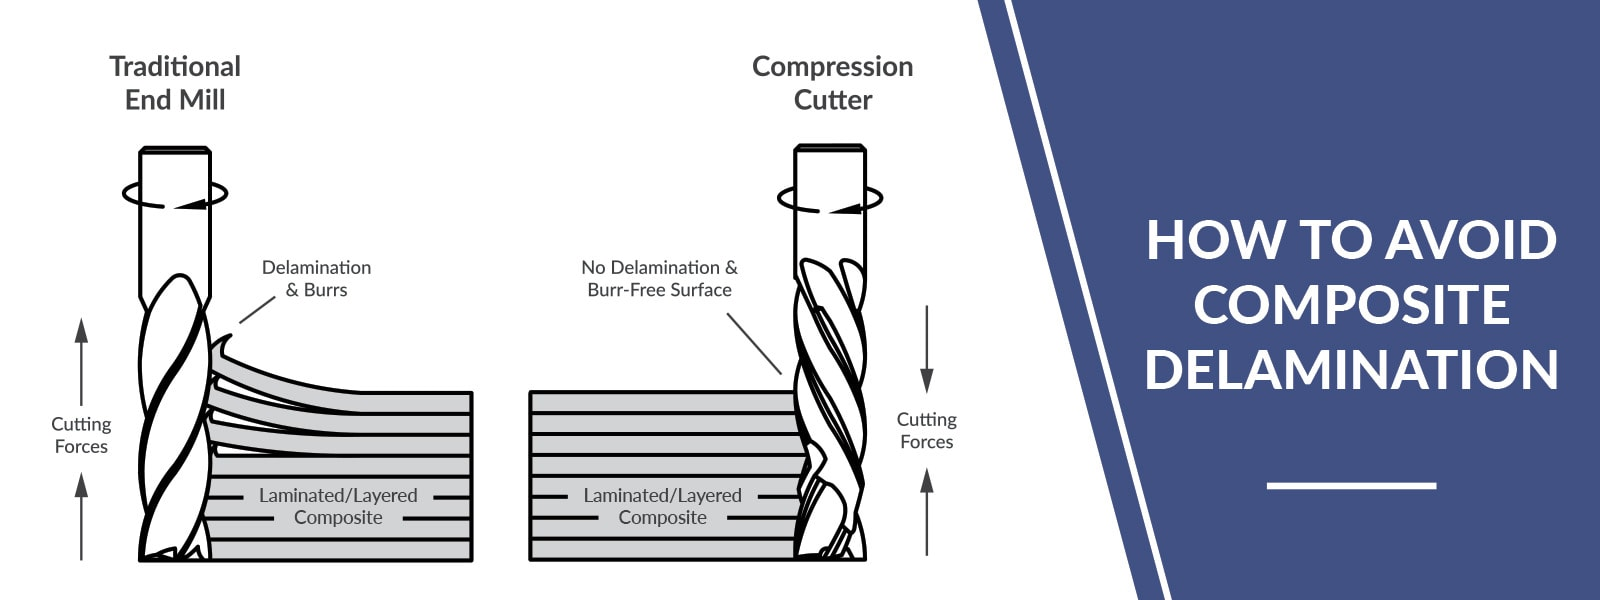 How To Avoid Composite Delamination With Compression